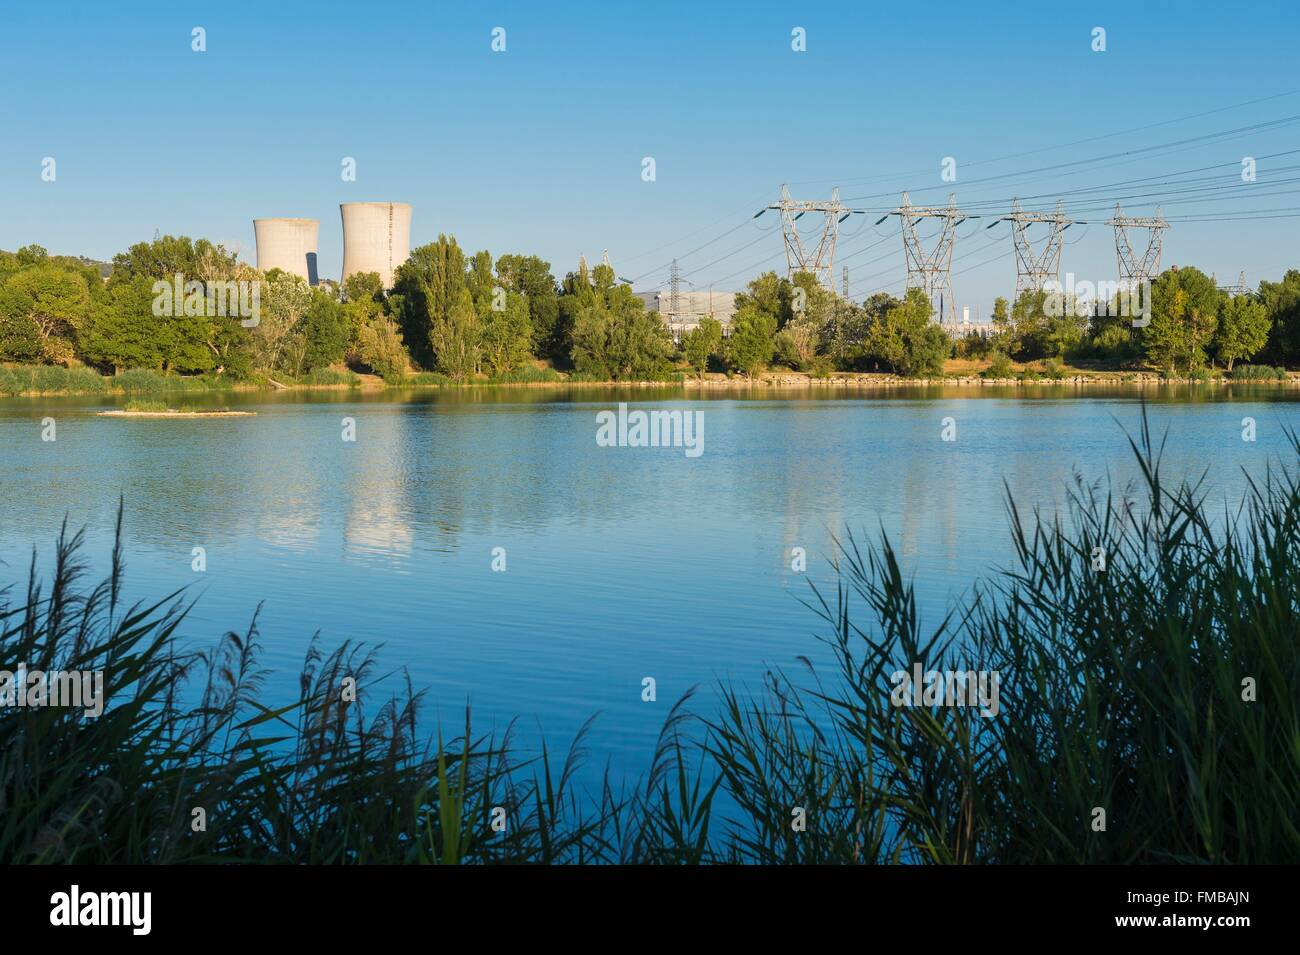 France, Drome, Pierrelatte, Tricastin Nuclear Power Plant - Stock Image